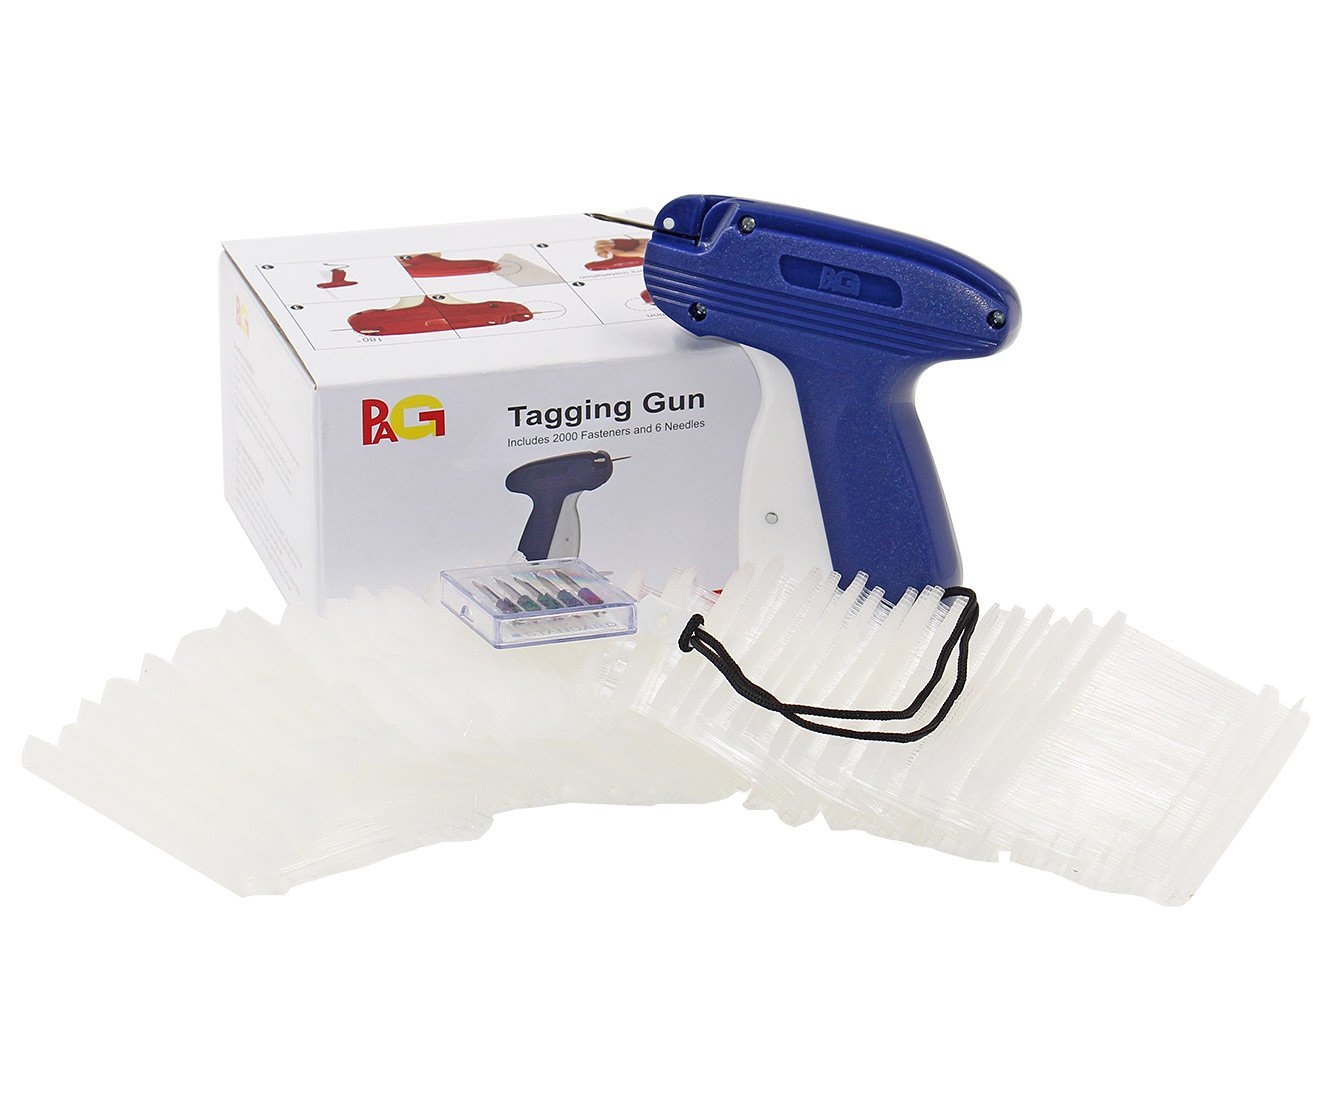 PAG New Upgrade Standard Tagging Gun Price Tag Attacher Gun for Clothing with 6 Needls and 2000 2 Barbs Fasteners Blue